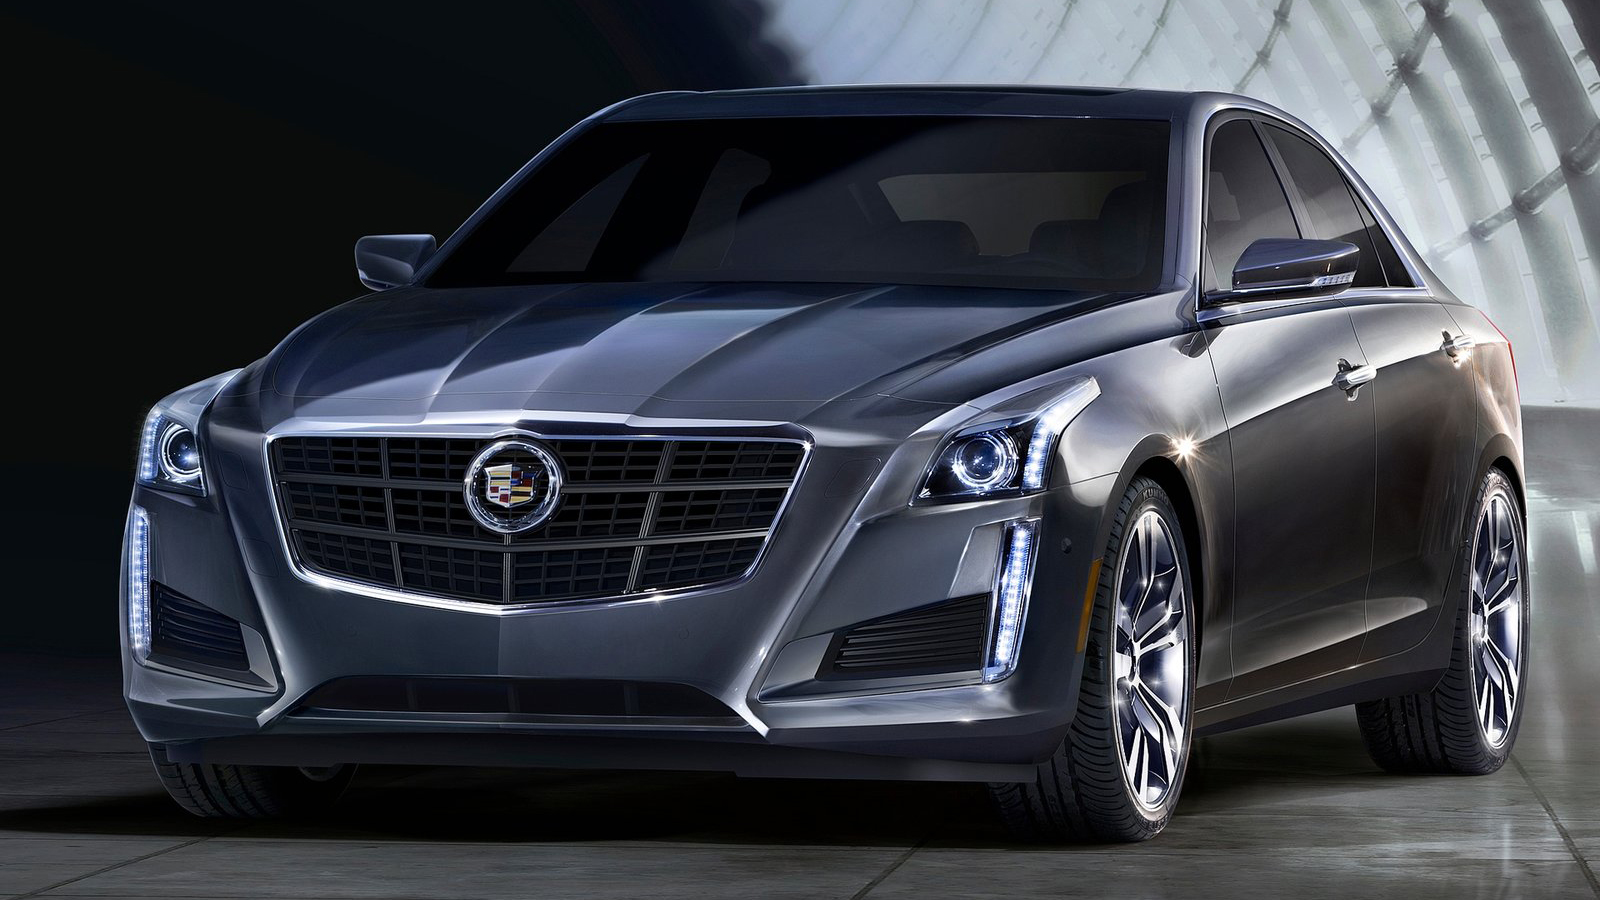 2014 cadillac cts 3 6 v6 twin turbo 420 hp carwp. Black Bedroom Furniture Sets. Home Design Ideas